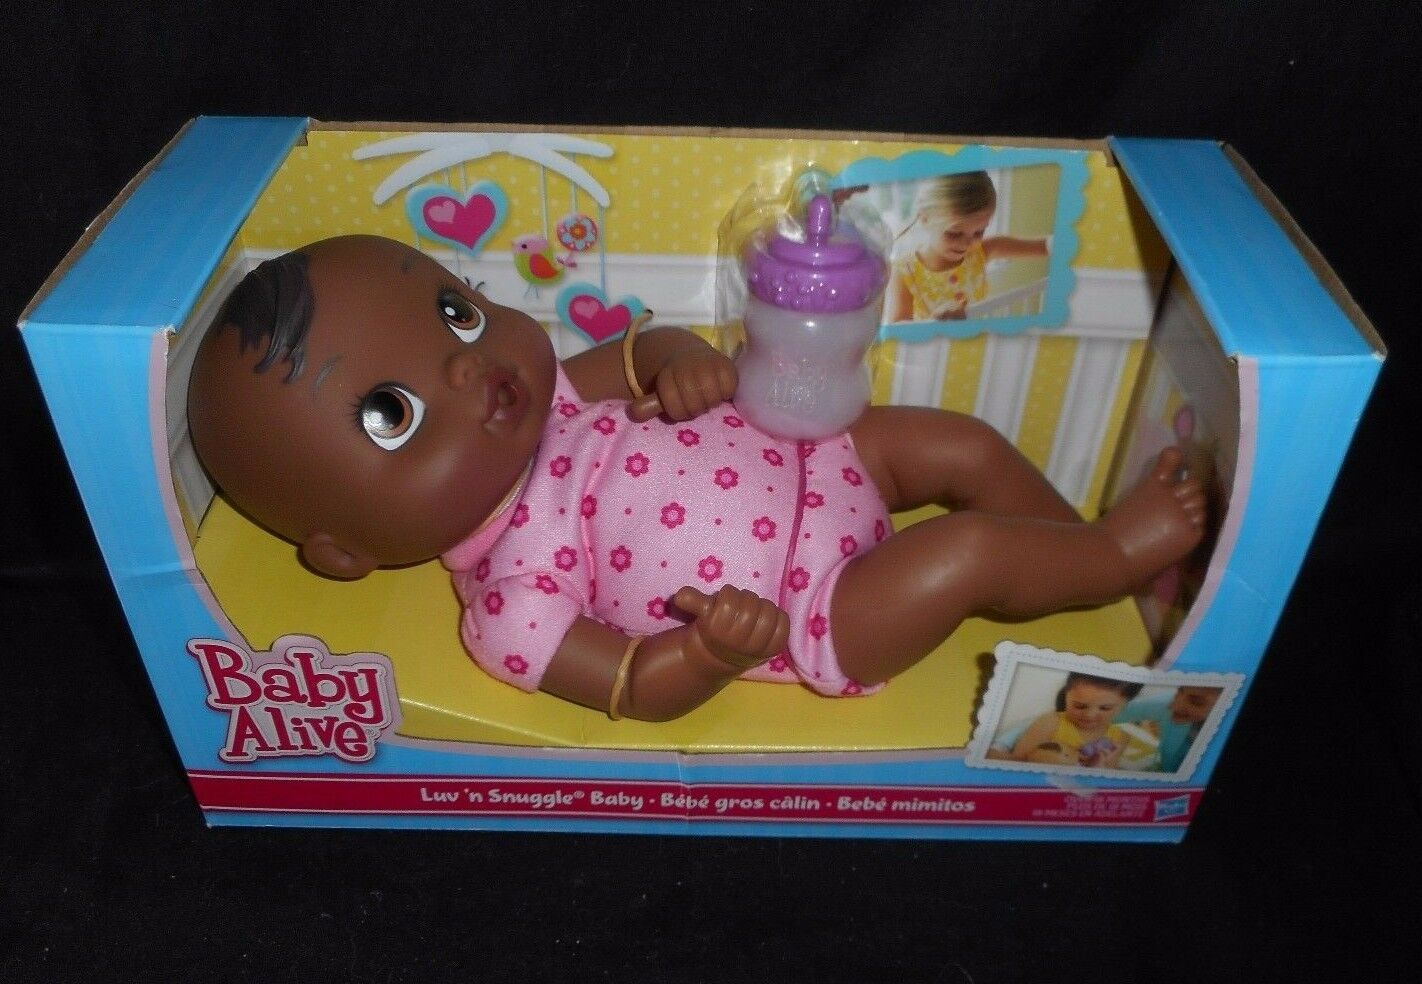 BABY ALIVE LUV N SNUGGLE HASBRO 2015 AFRICAN AMERICAN DOLL W/ BOTTLE IN BOX